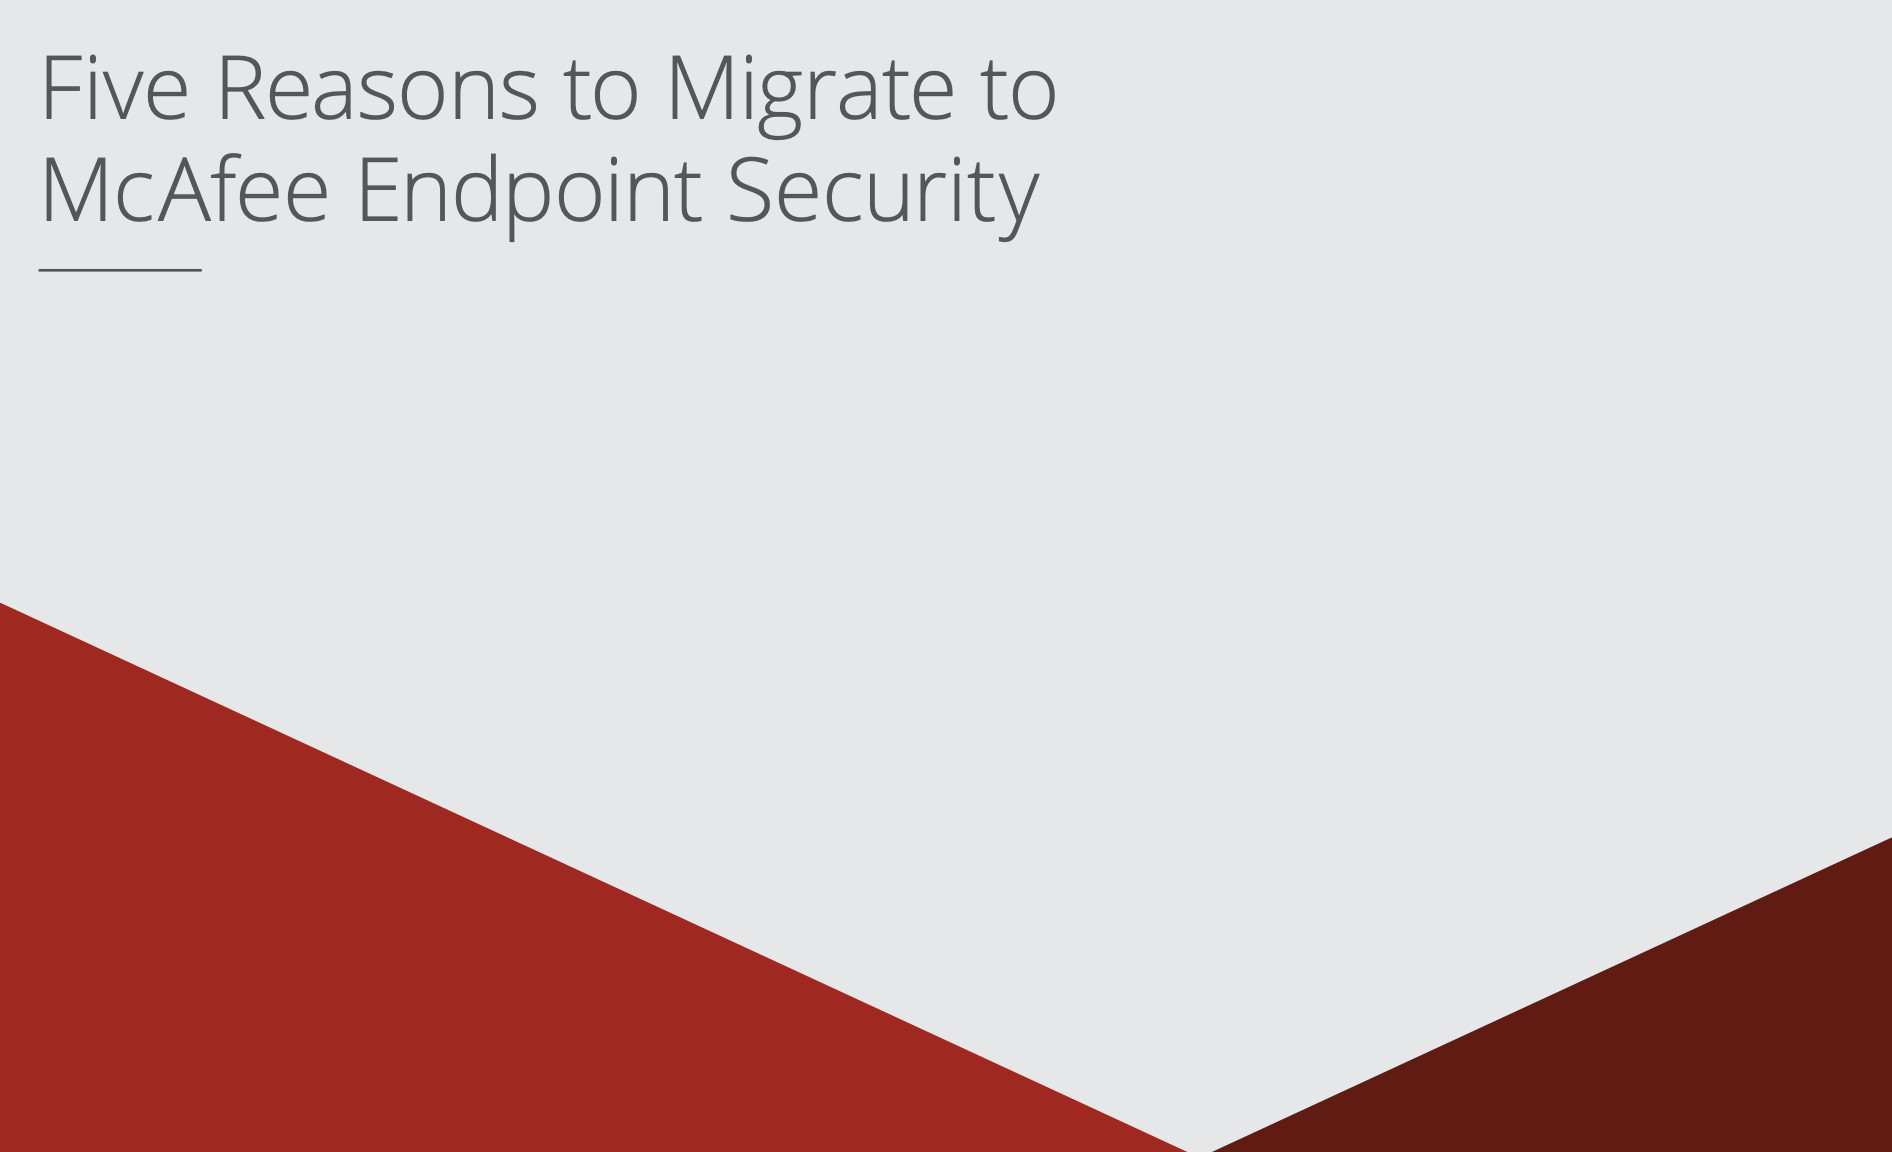 5 reasons to migrate to McAfee cover